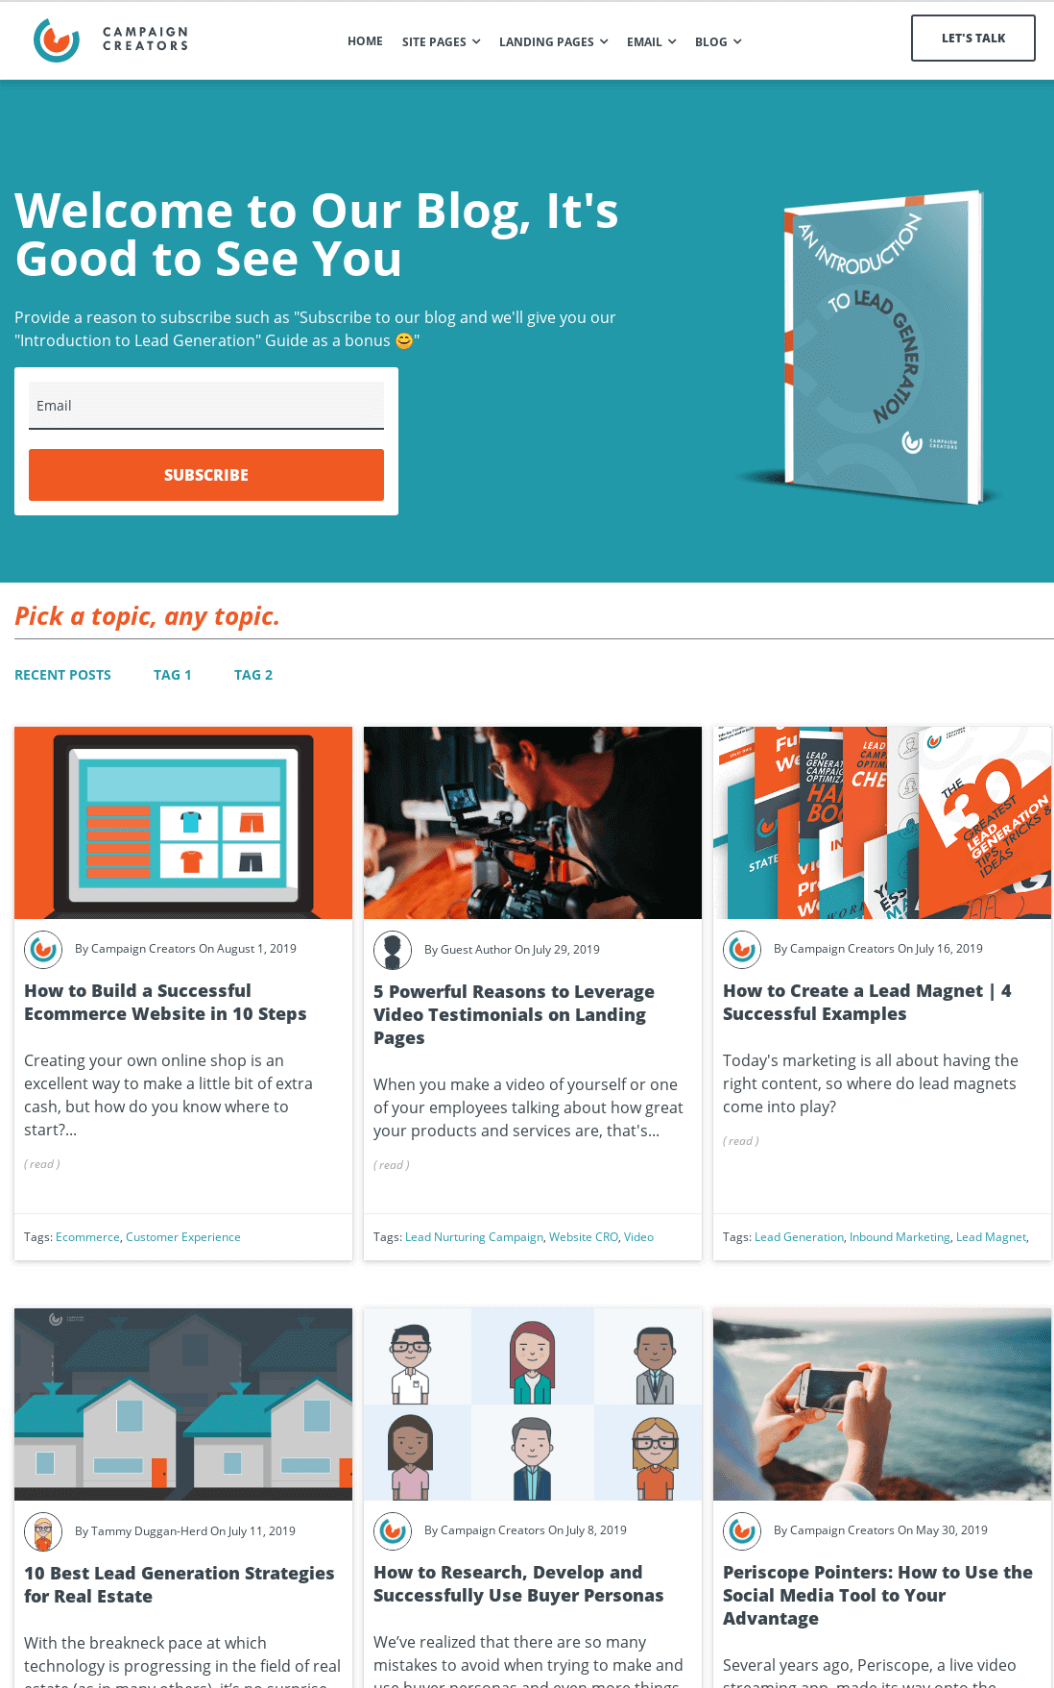 Hubspot blog templates with interactive blog design elements for optimal visual storytelling and content UX.